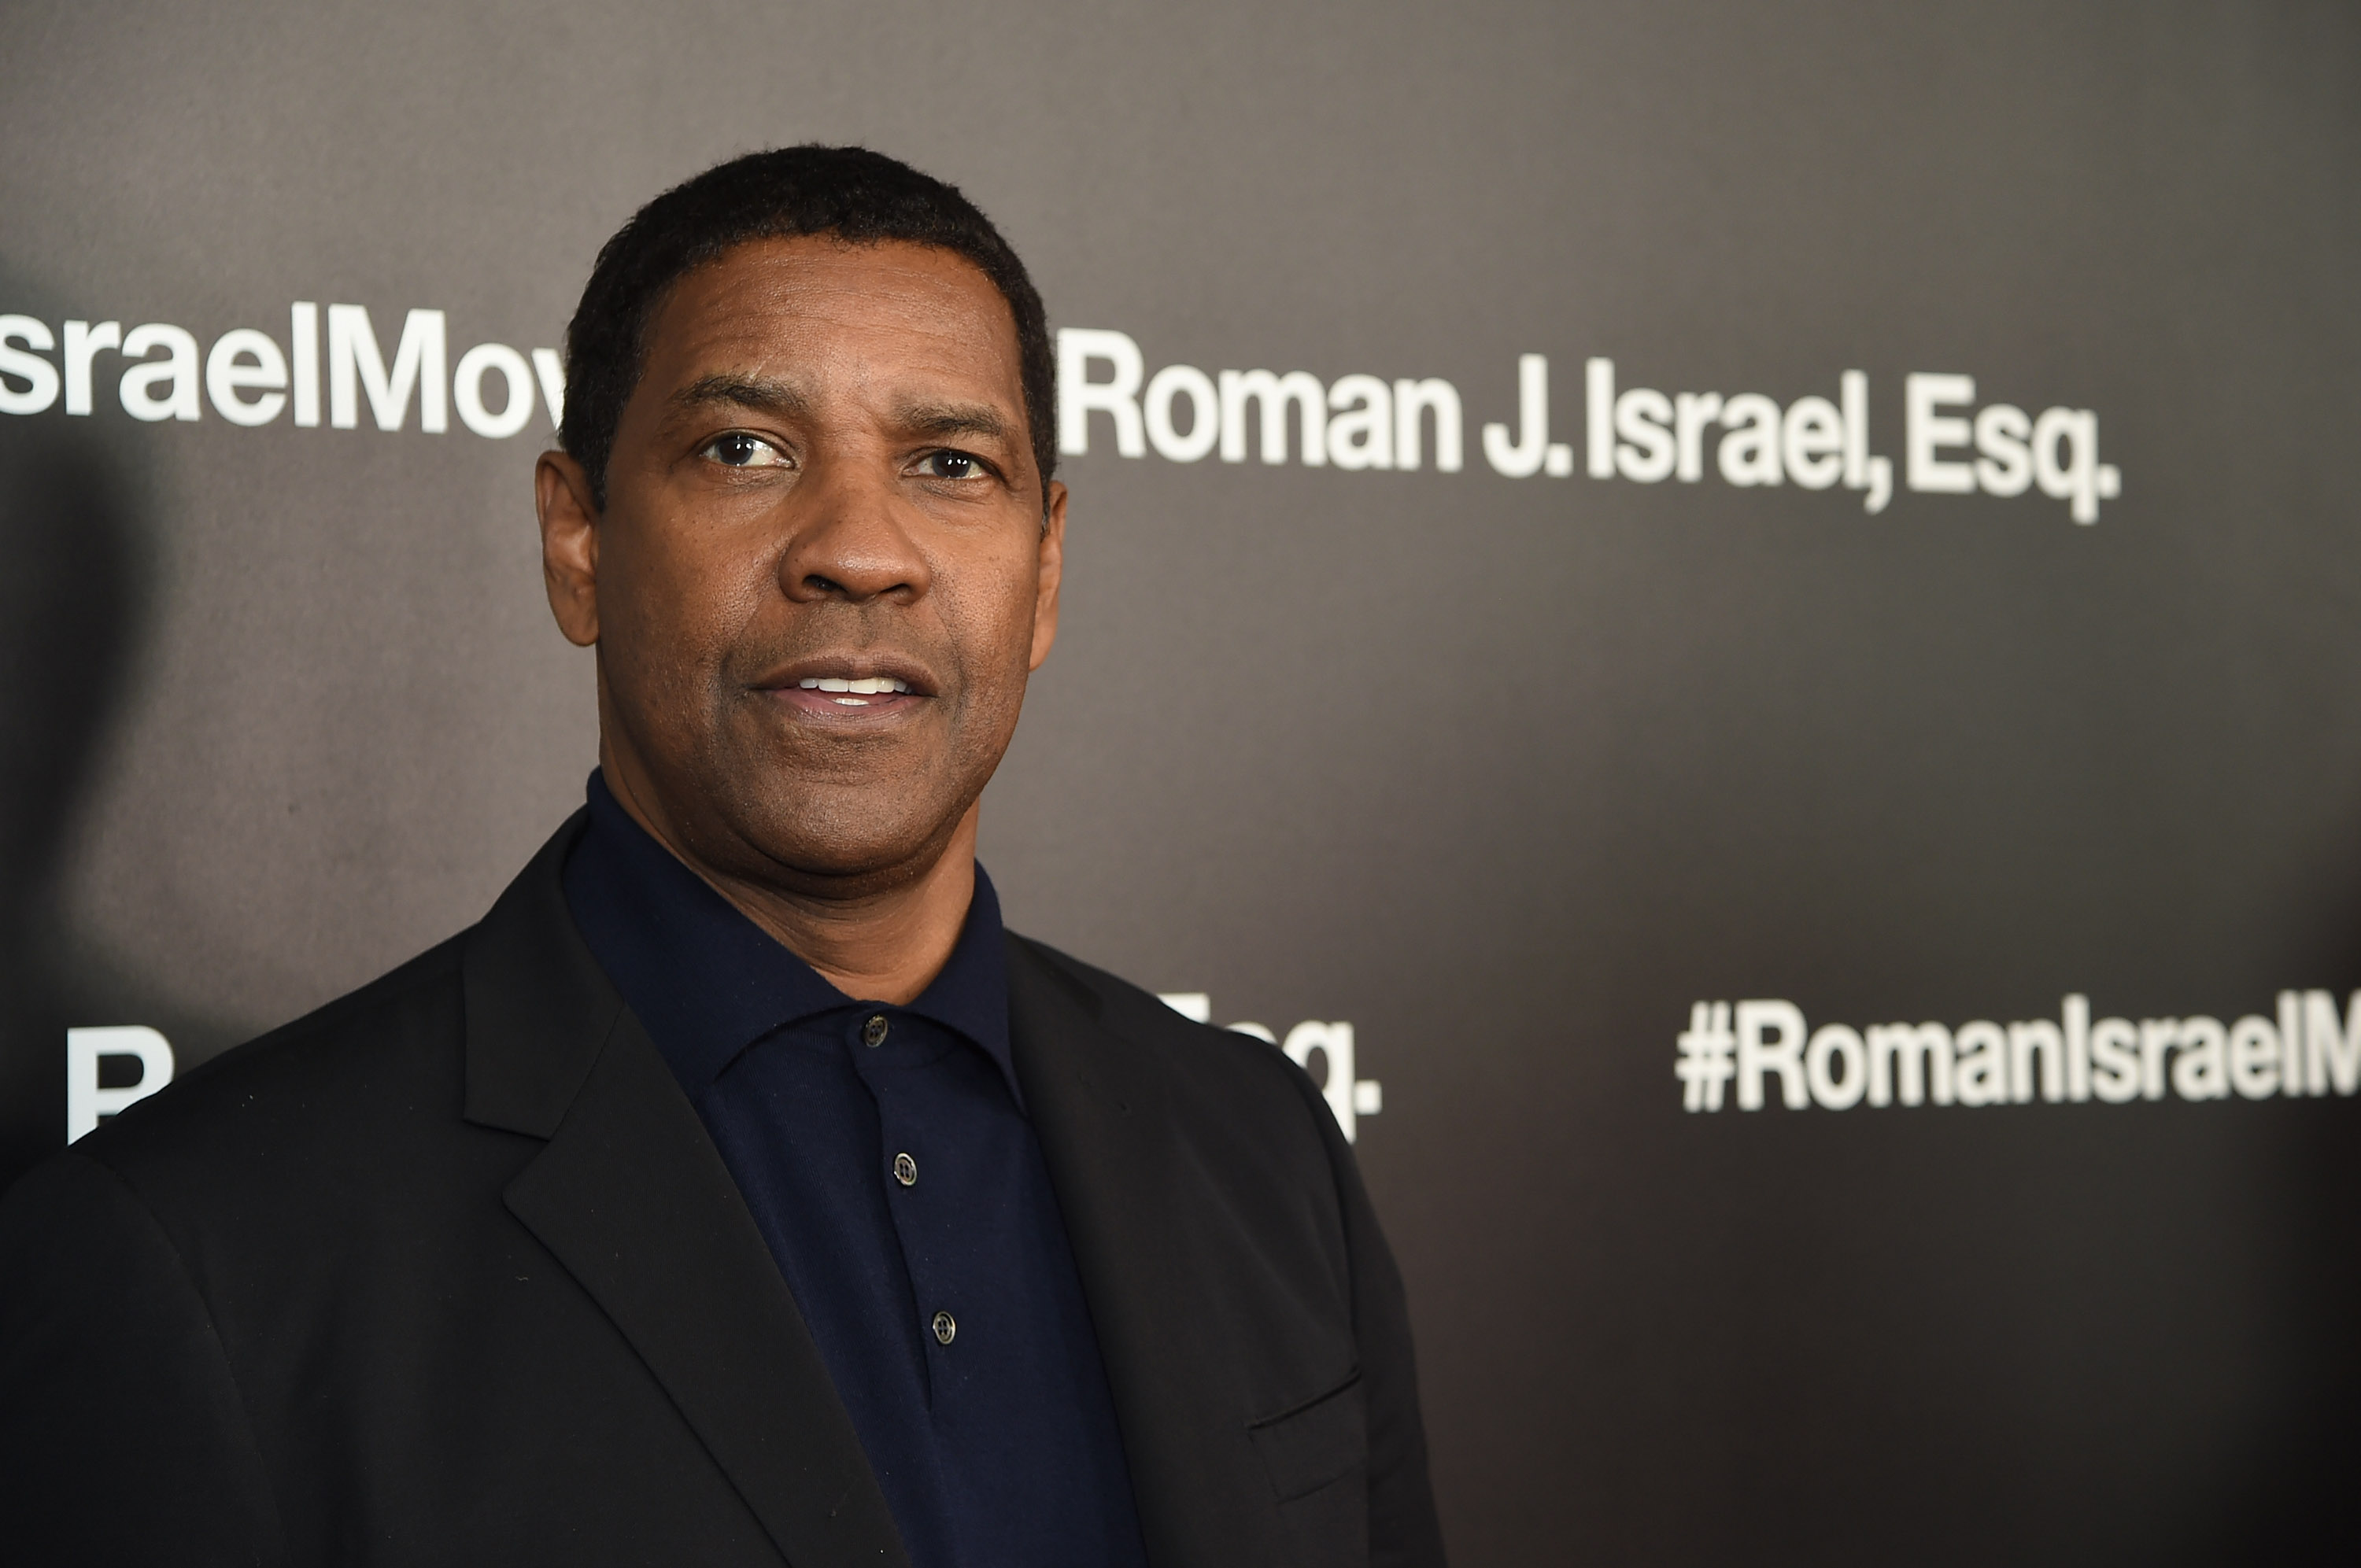 Denzel Washington attends the screening of Roman J. Israel, Esq. at Henry R. Luce Auditorium at Brookfield Place on November 20, 2017 in New York City. (Getty Images)